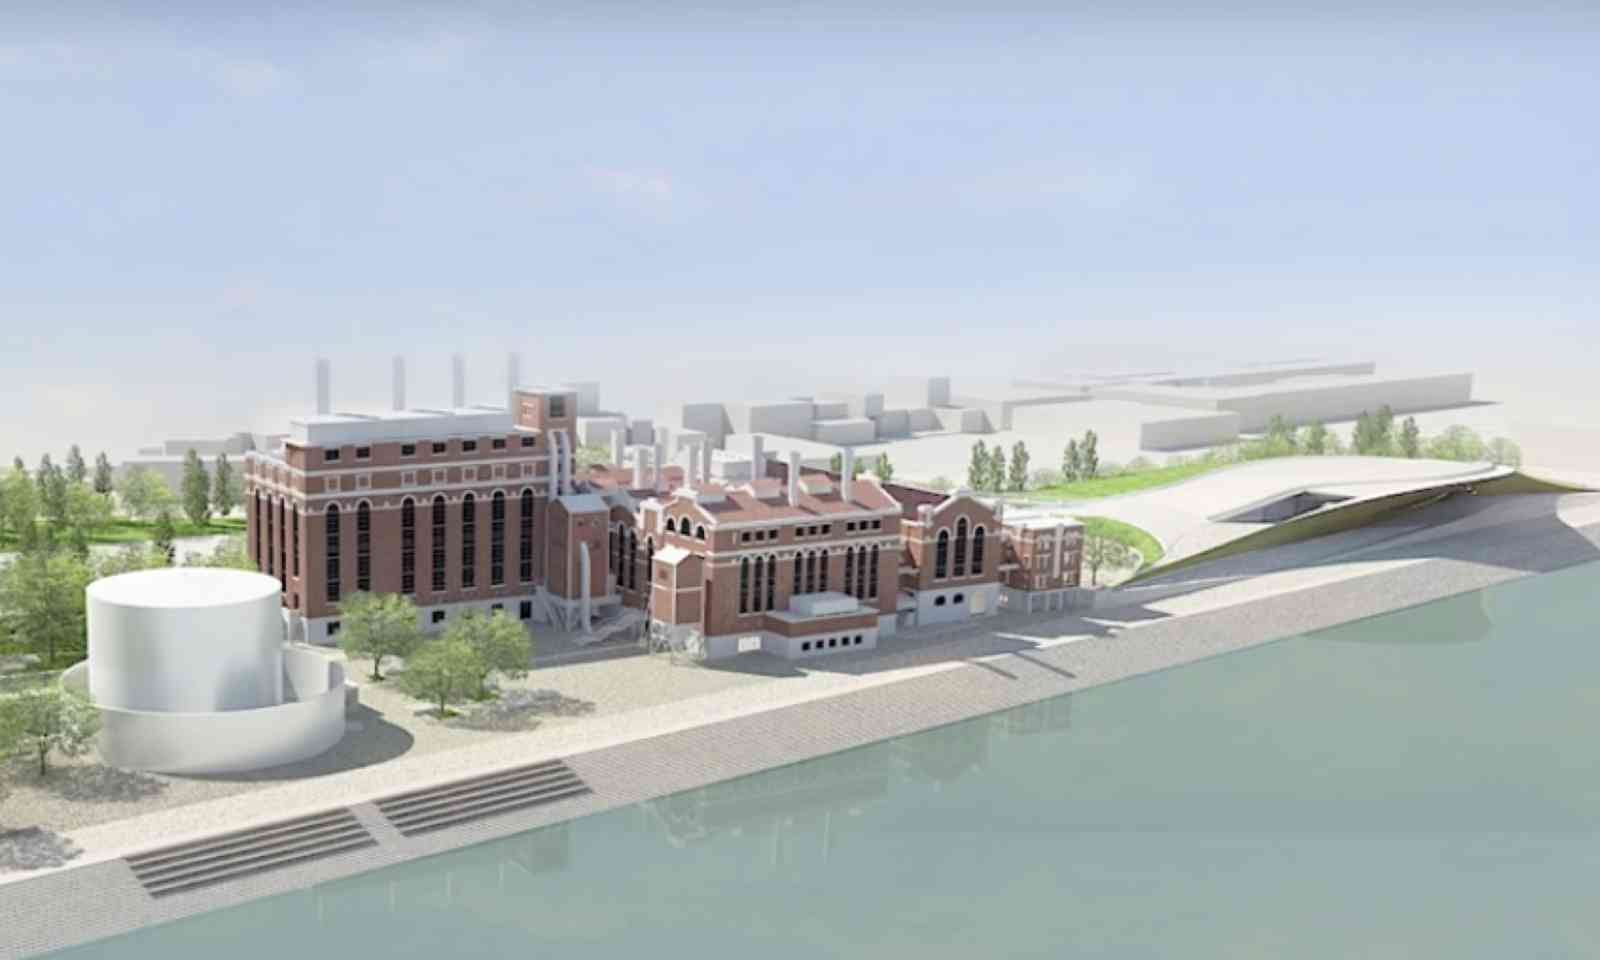 Artists impression of the new MAAT buildings (Amanda Levete Architects)